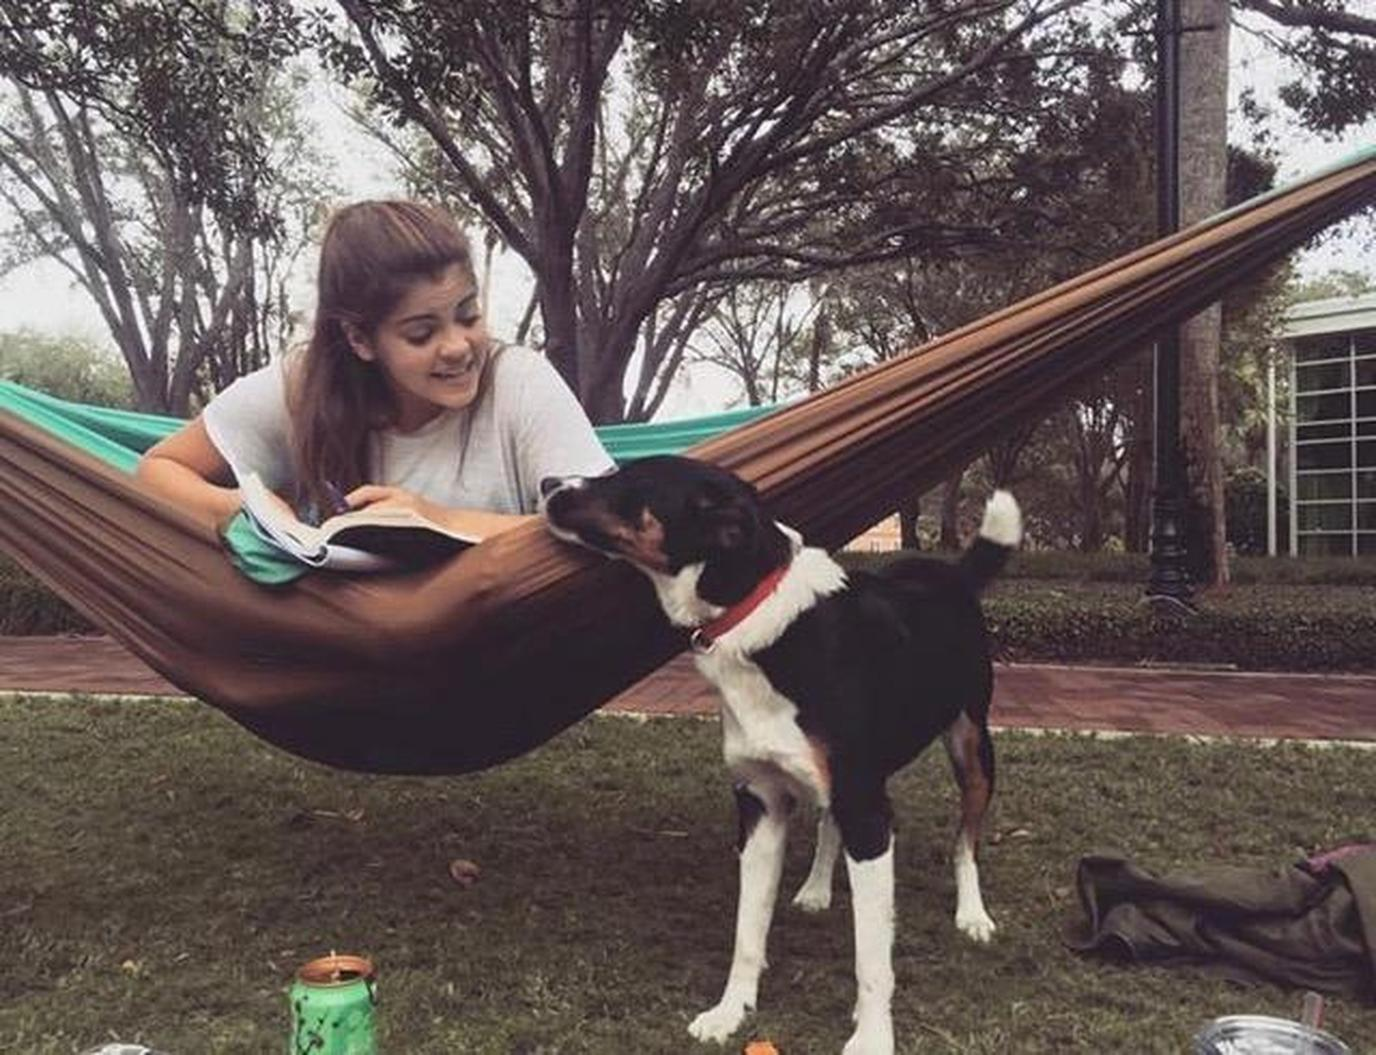 Stetson University is a pet-friendly college that welcomes dogs on campus.